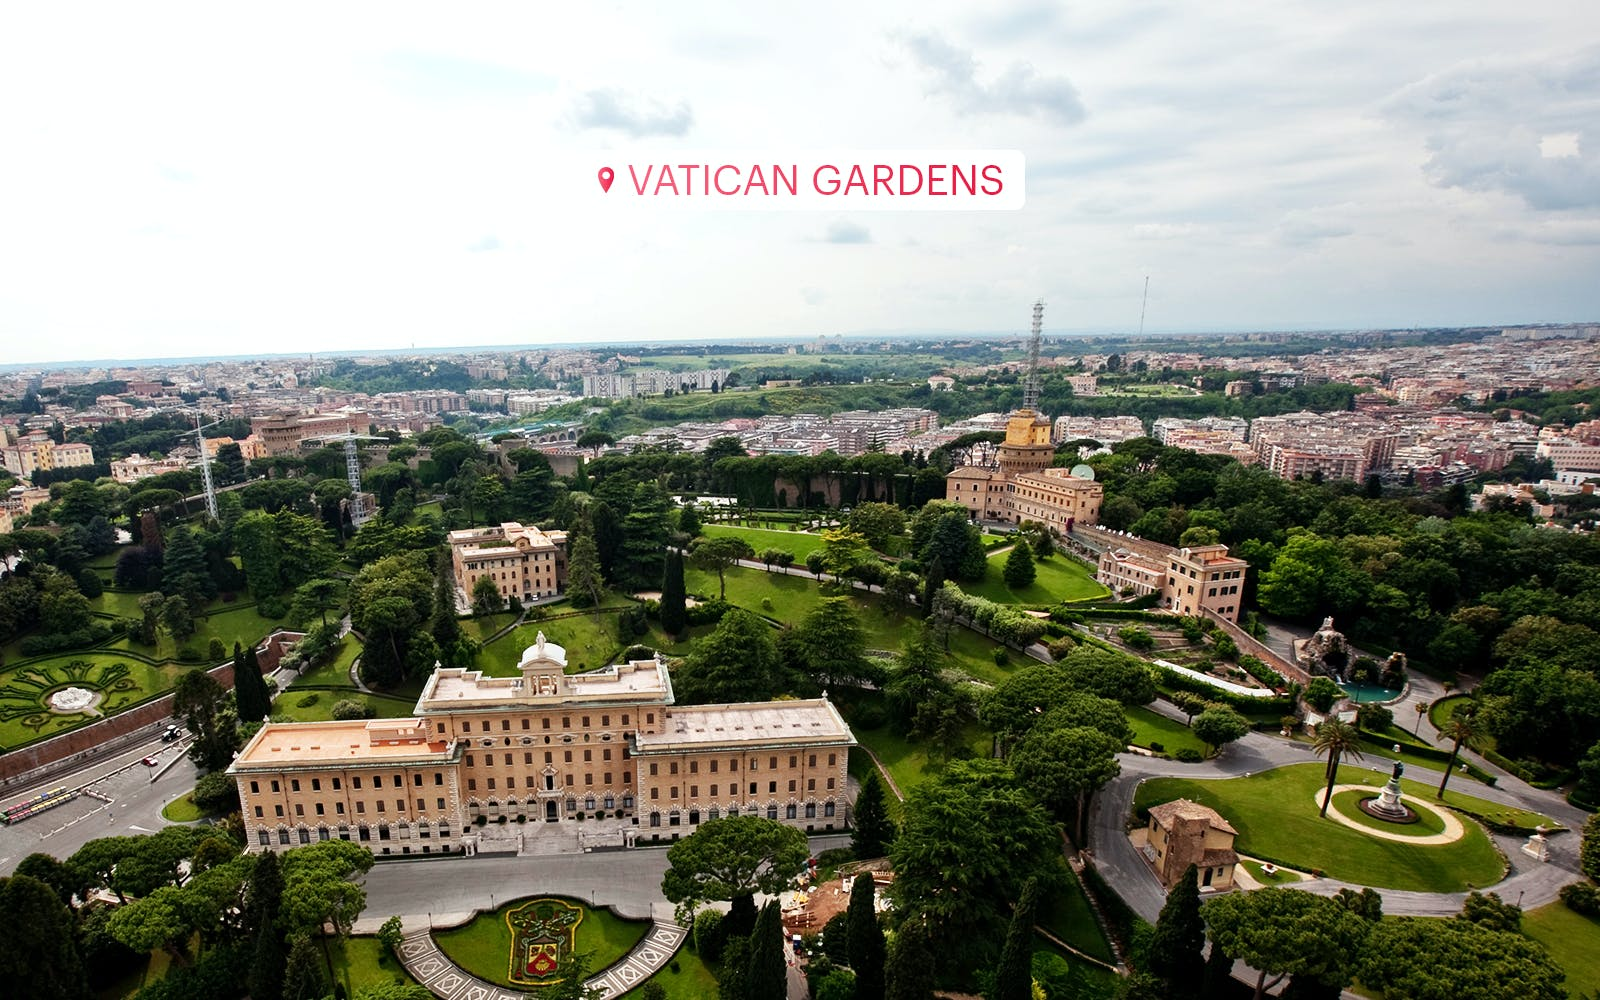 vatican gardens guided tour with vatican museum access-2